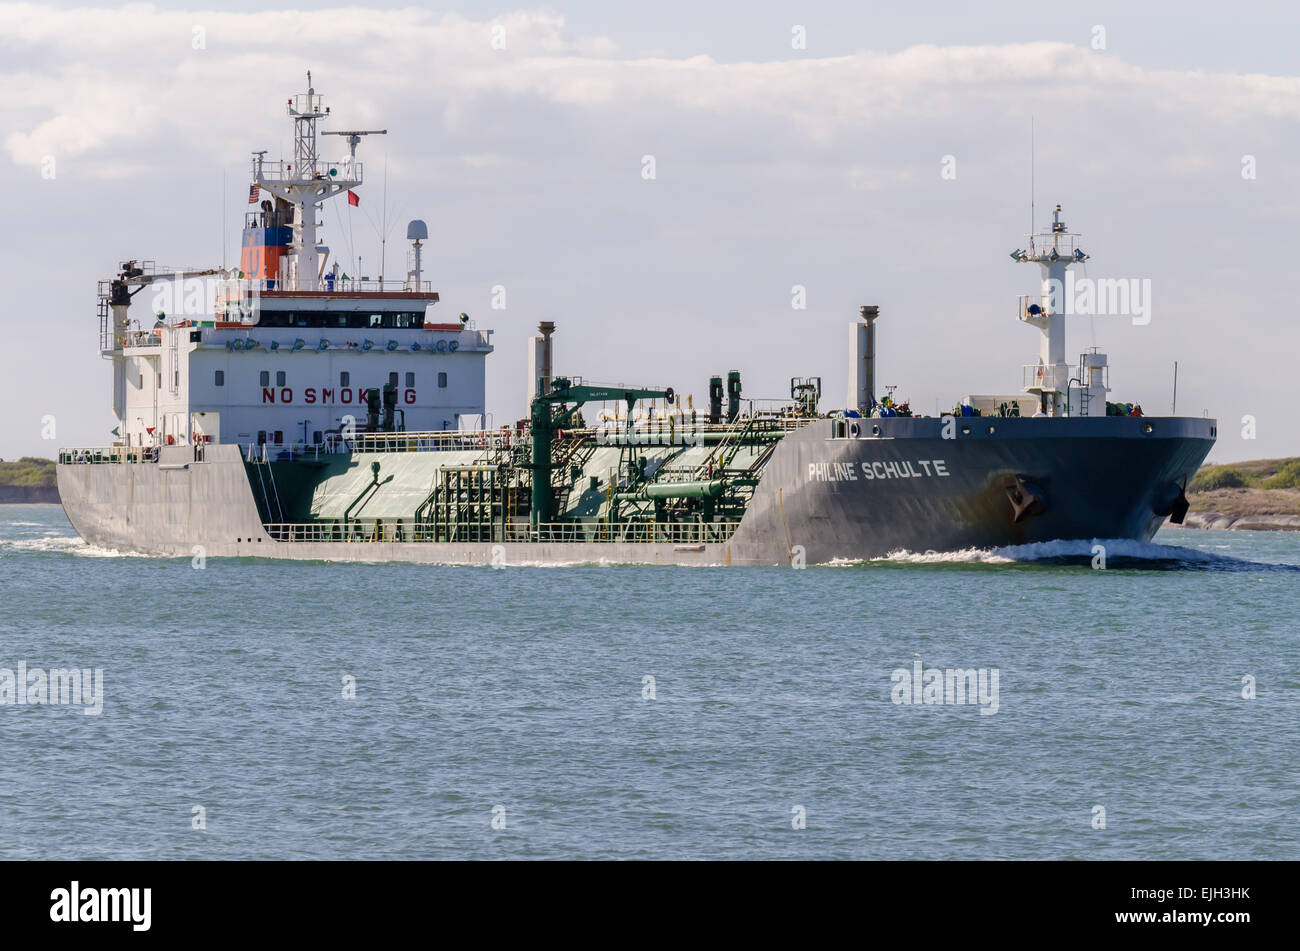 The LNG tanker PHILINE SCHULTE whose home port is ISLE OF MAN in the UK is shown in the Corpus Christi ship channel - Stock Image